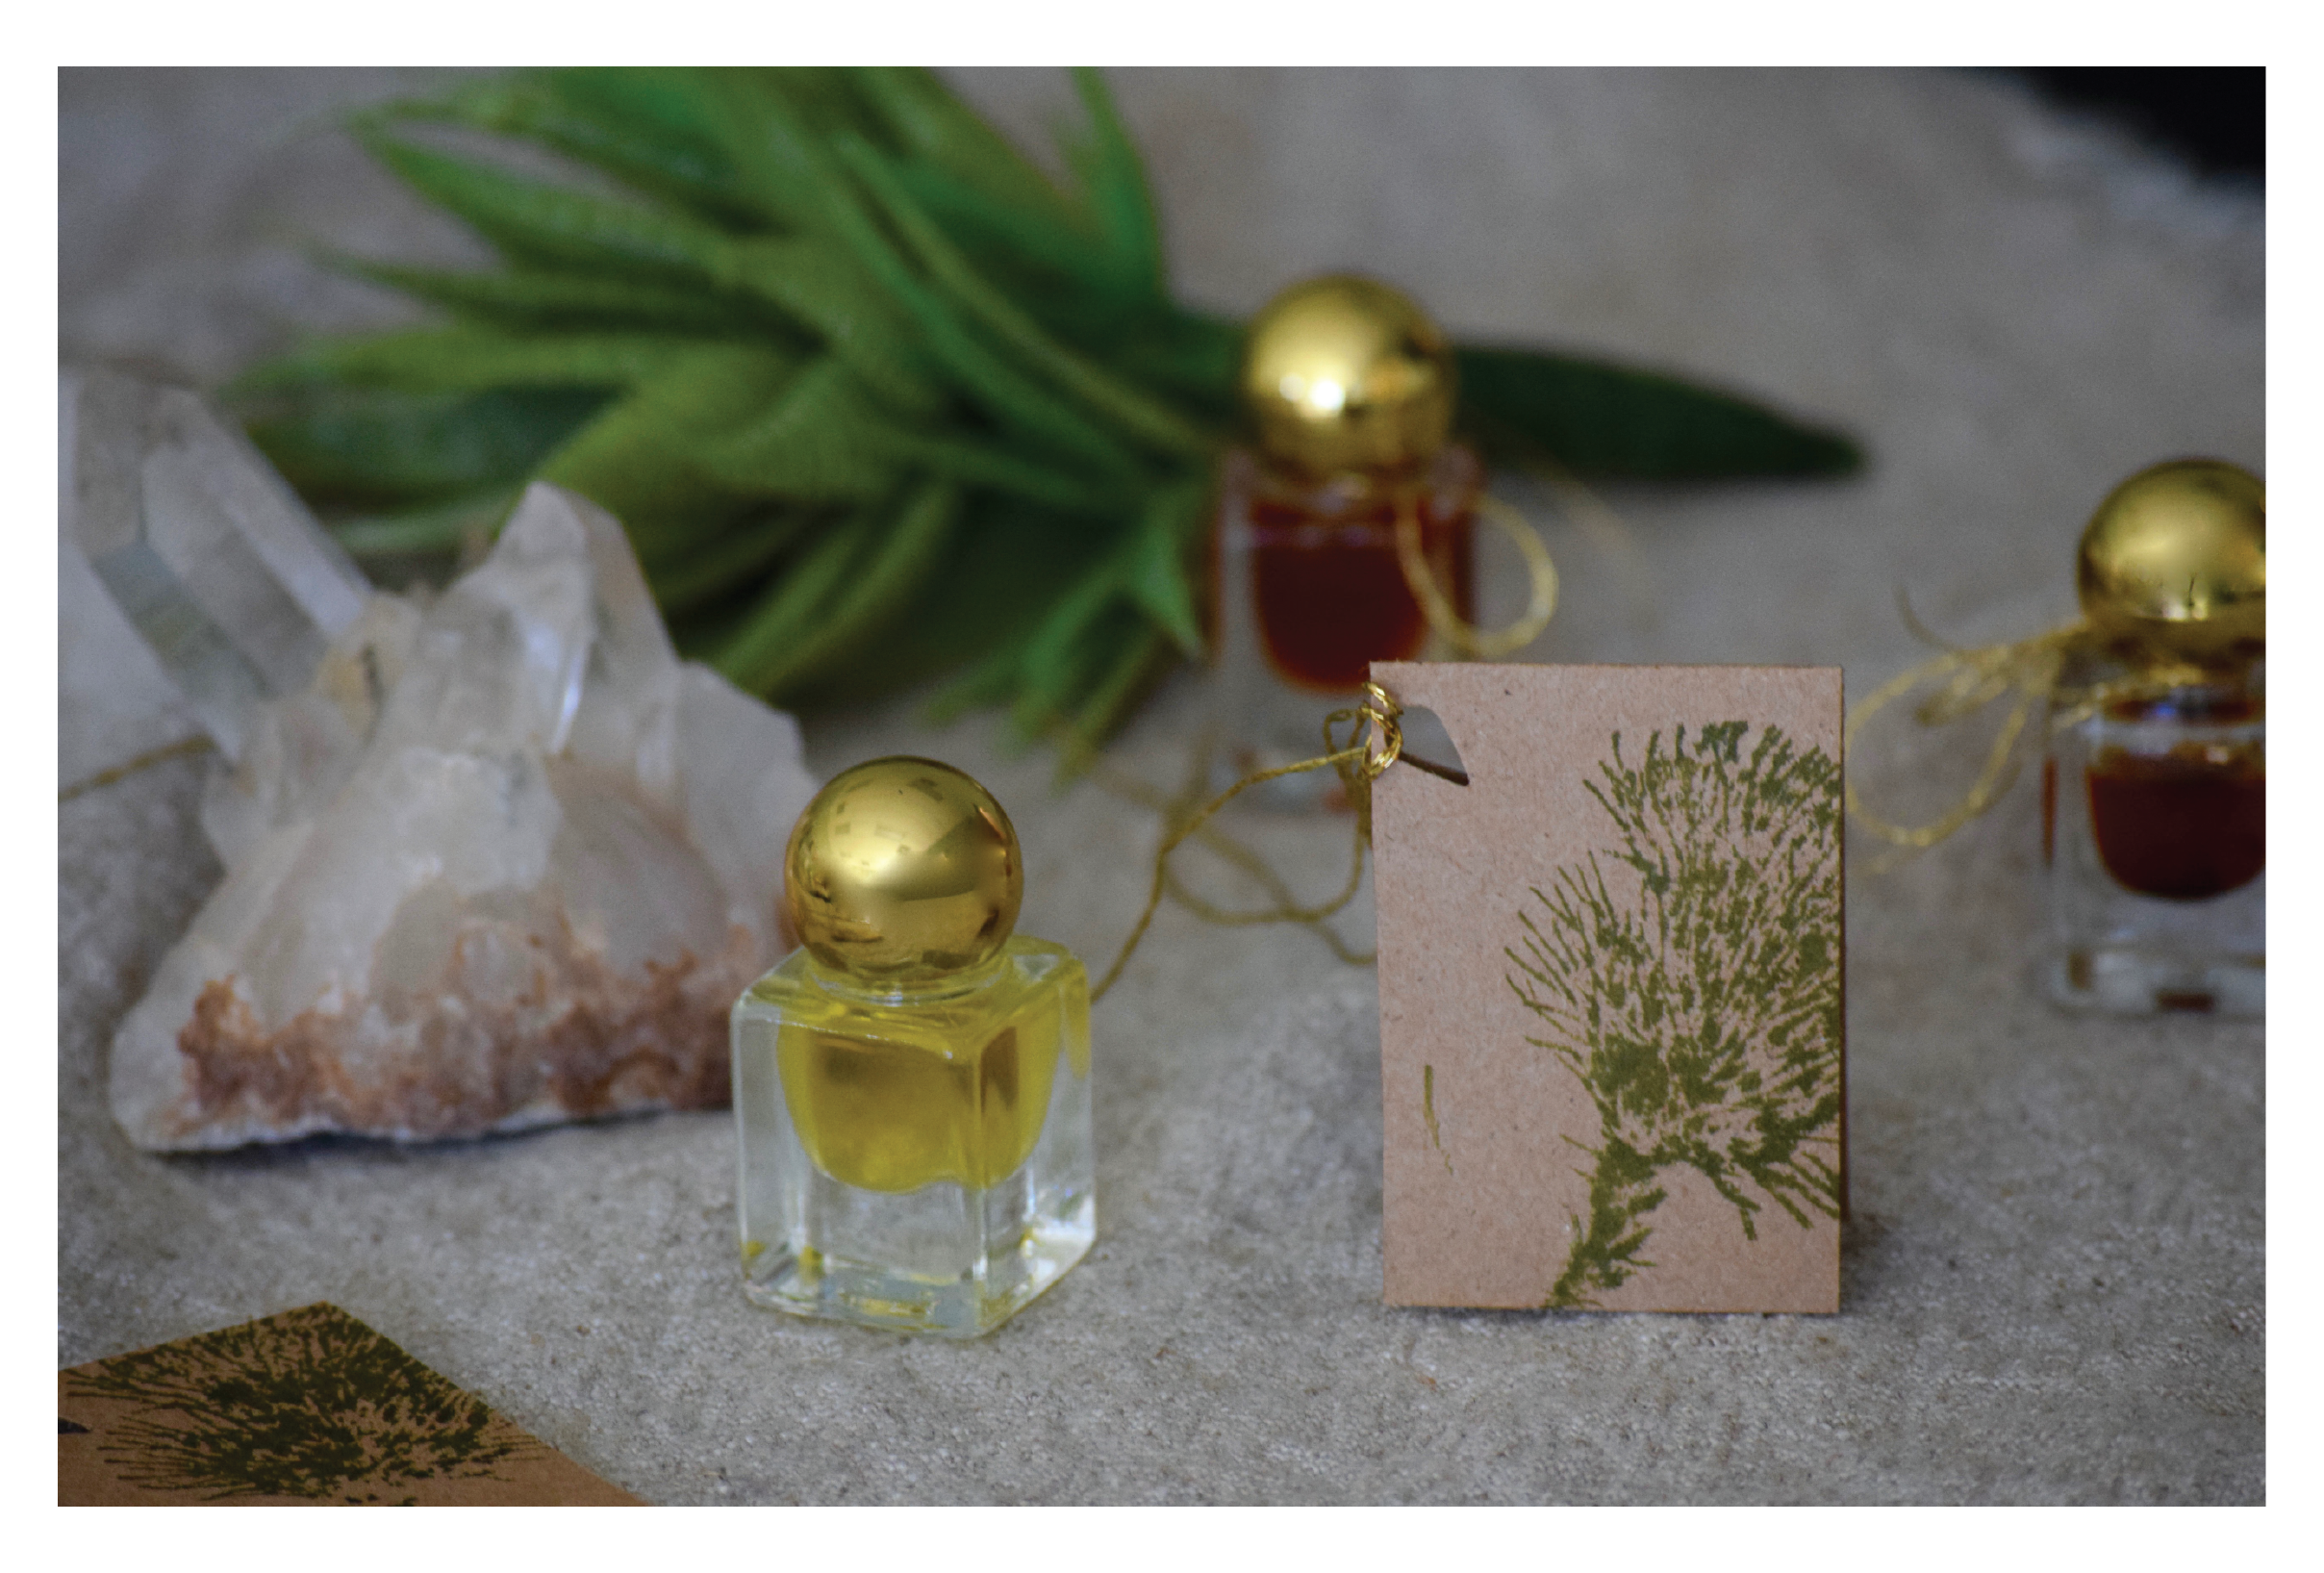 Boost your Well-Being with the Scents of the Holiday Season